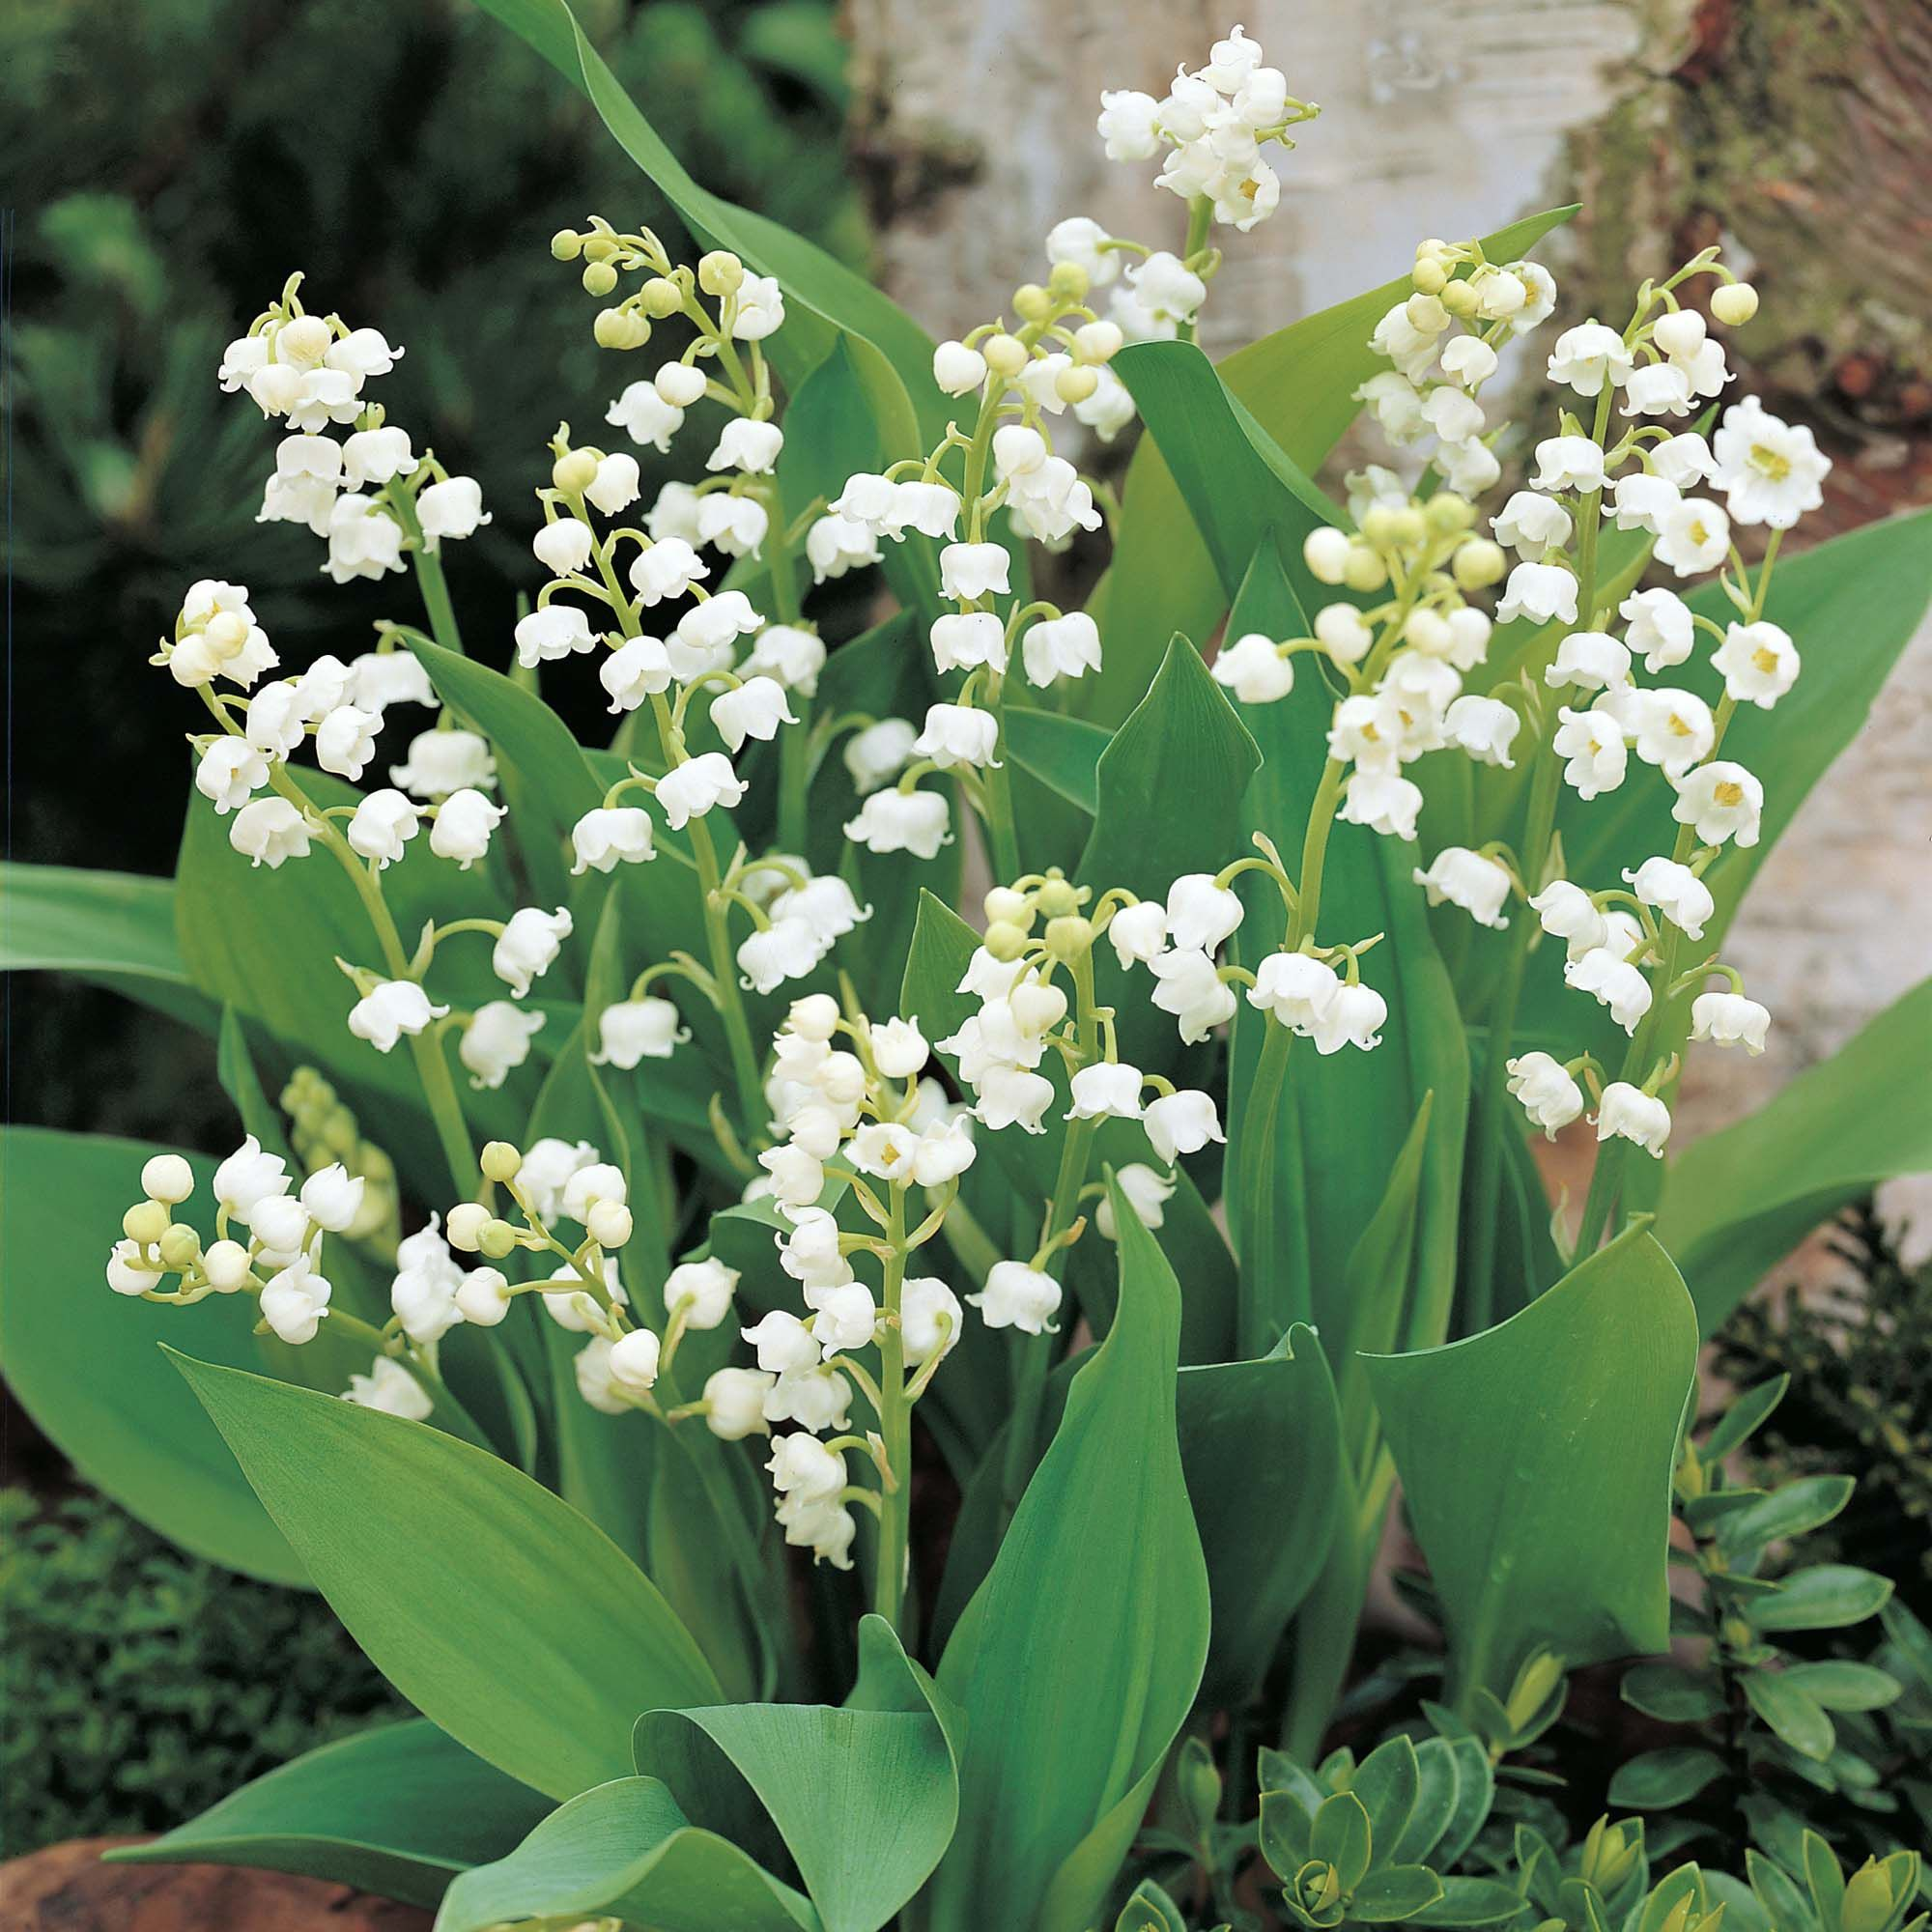 Lily of the valleyconvallaria majalis plants spring interest